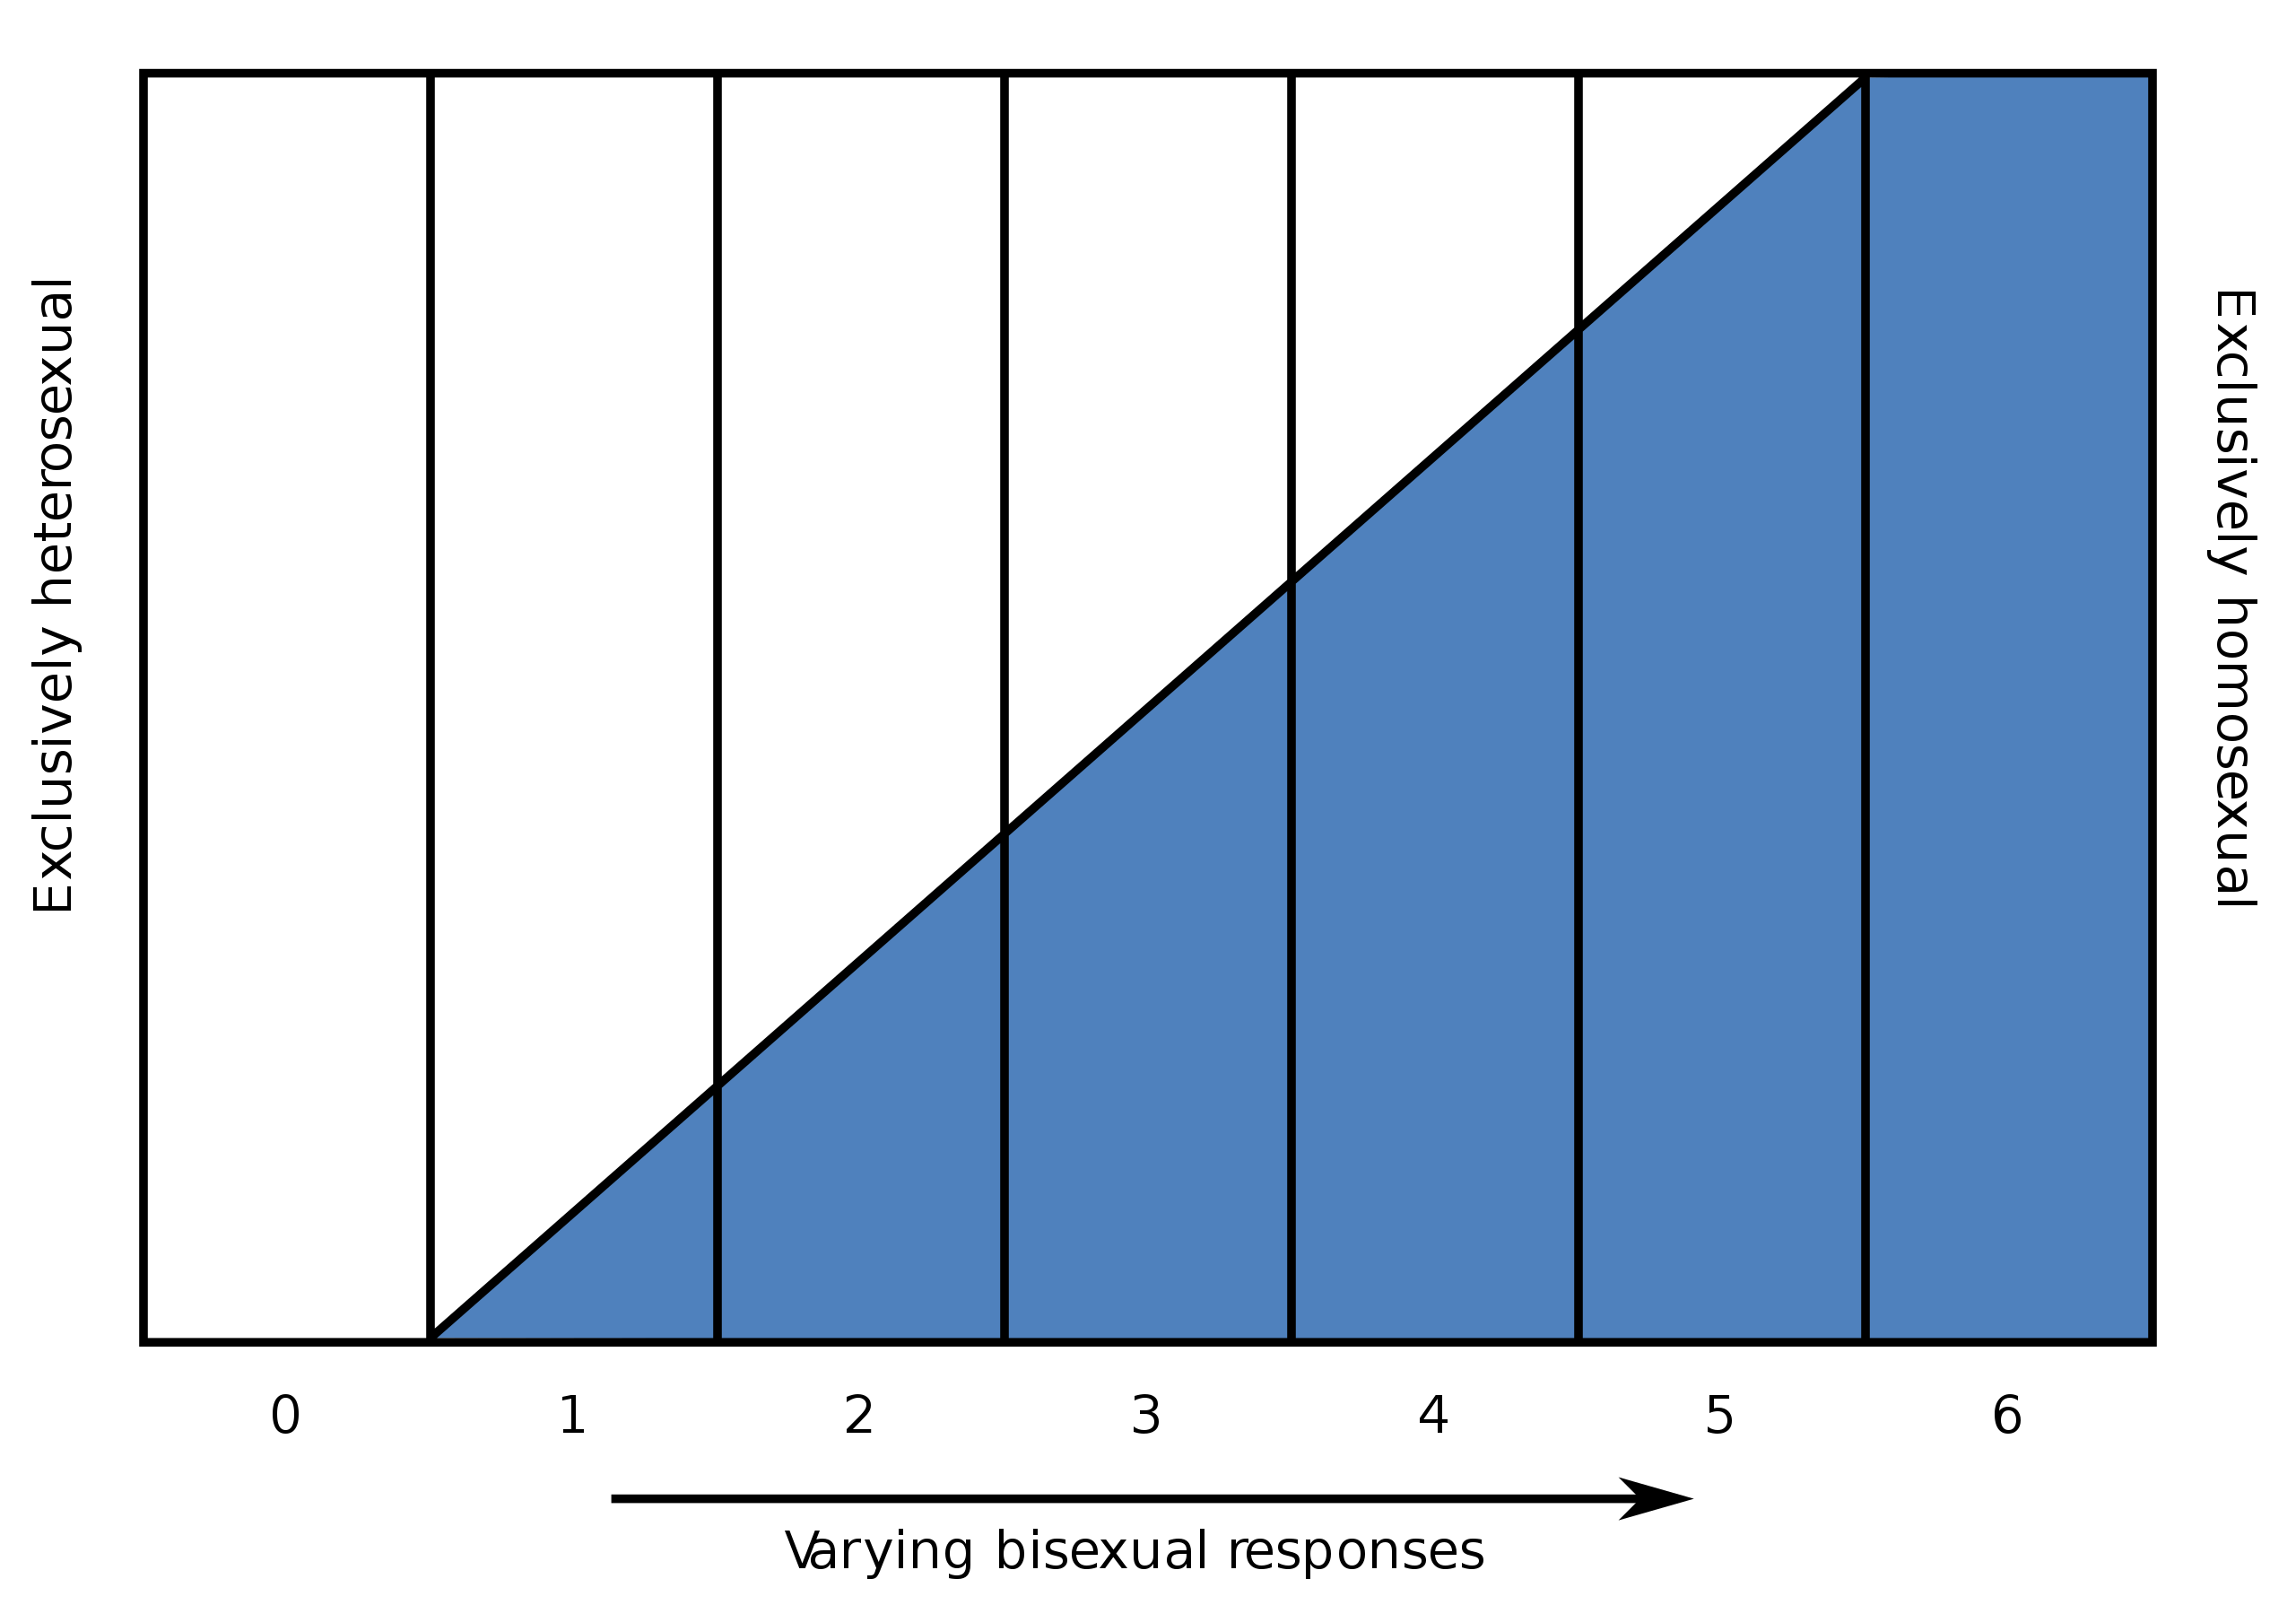 Image of the Kinsey Sale, showing on the left exclusively heterosexual and on the left exclusively homosexual, with the bottom listed from 0-6 left to right.